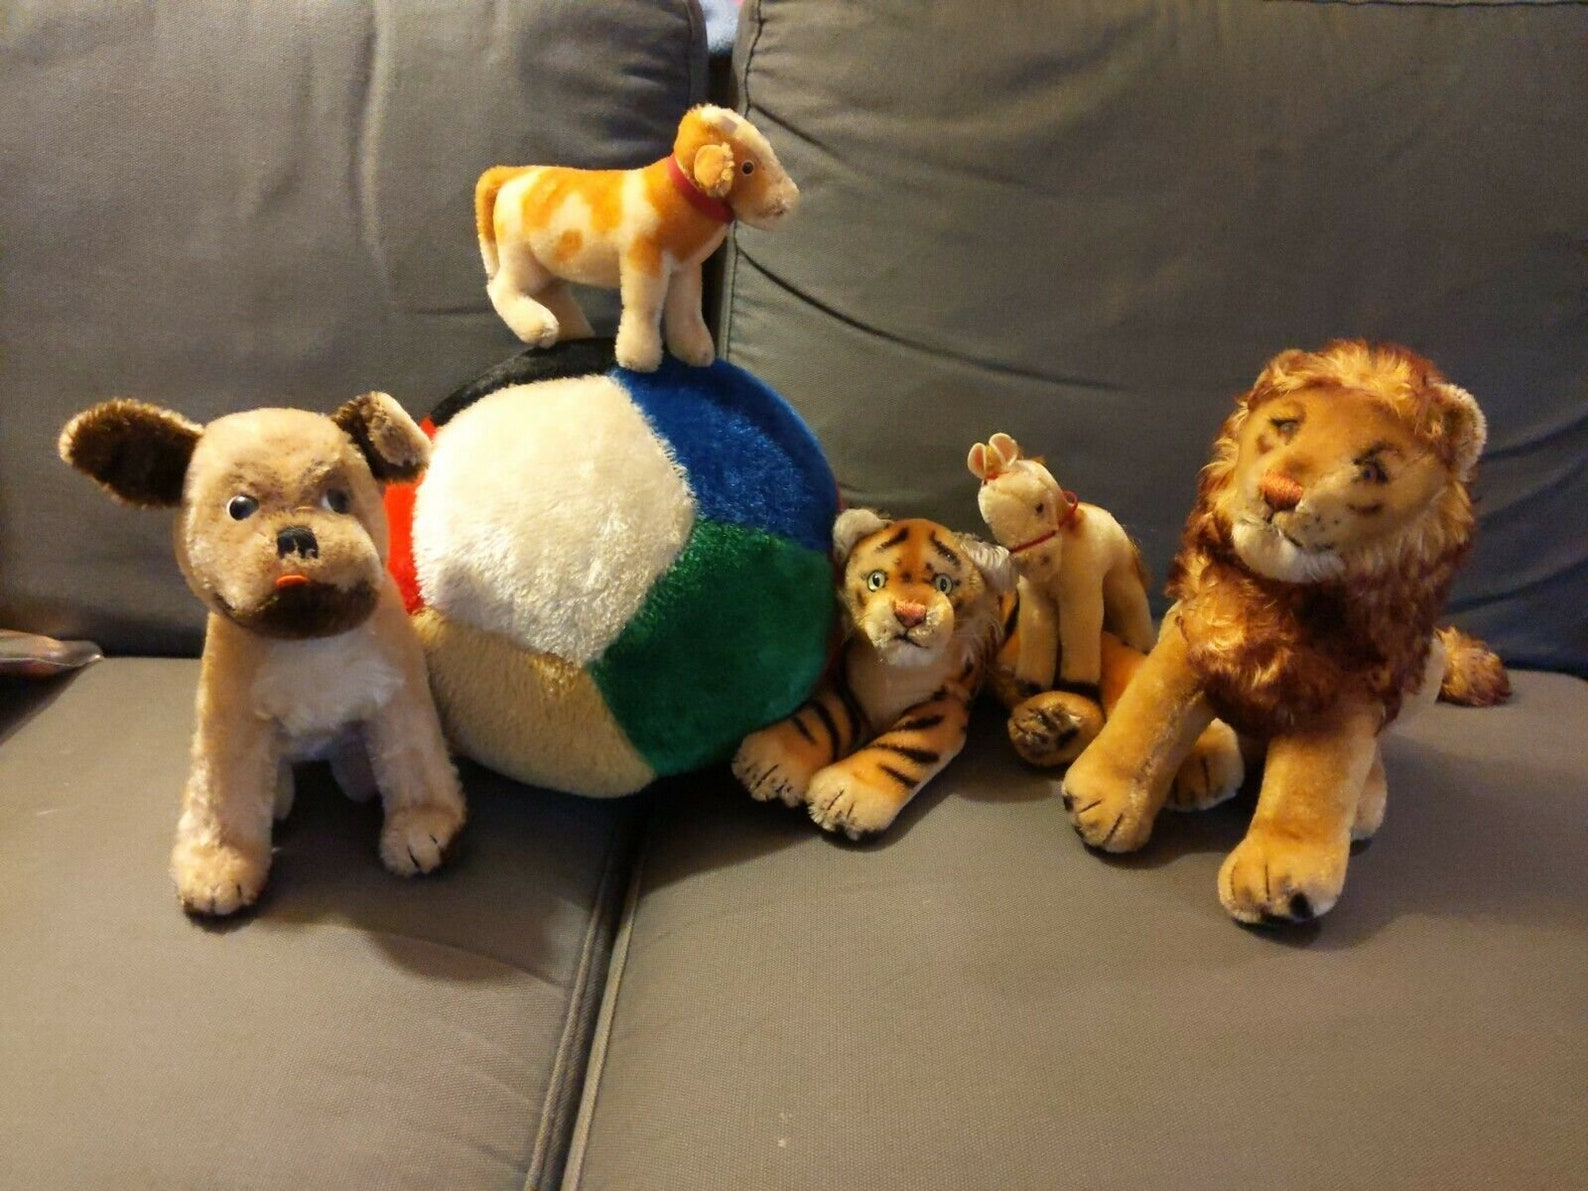 1960s steiff lot of six stuffed animals toys: tiger, lion, horse, bessy cow, mopsy dog, large soccer ball, all mohair